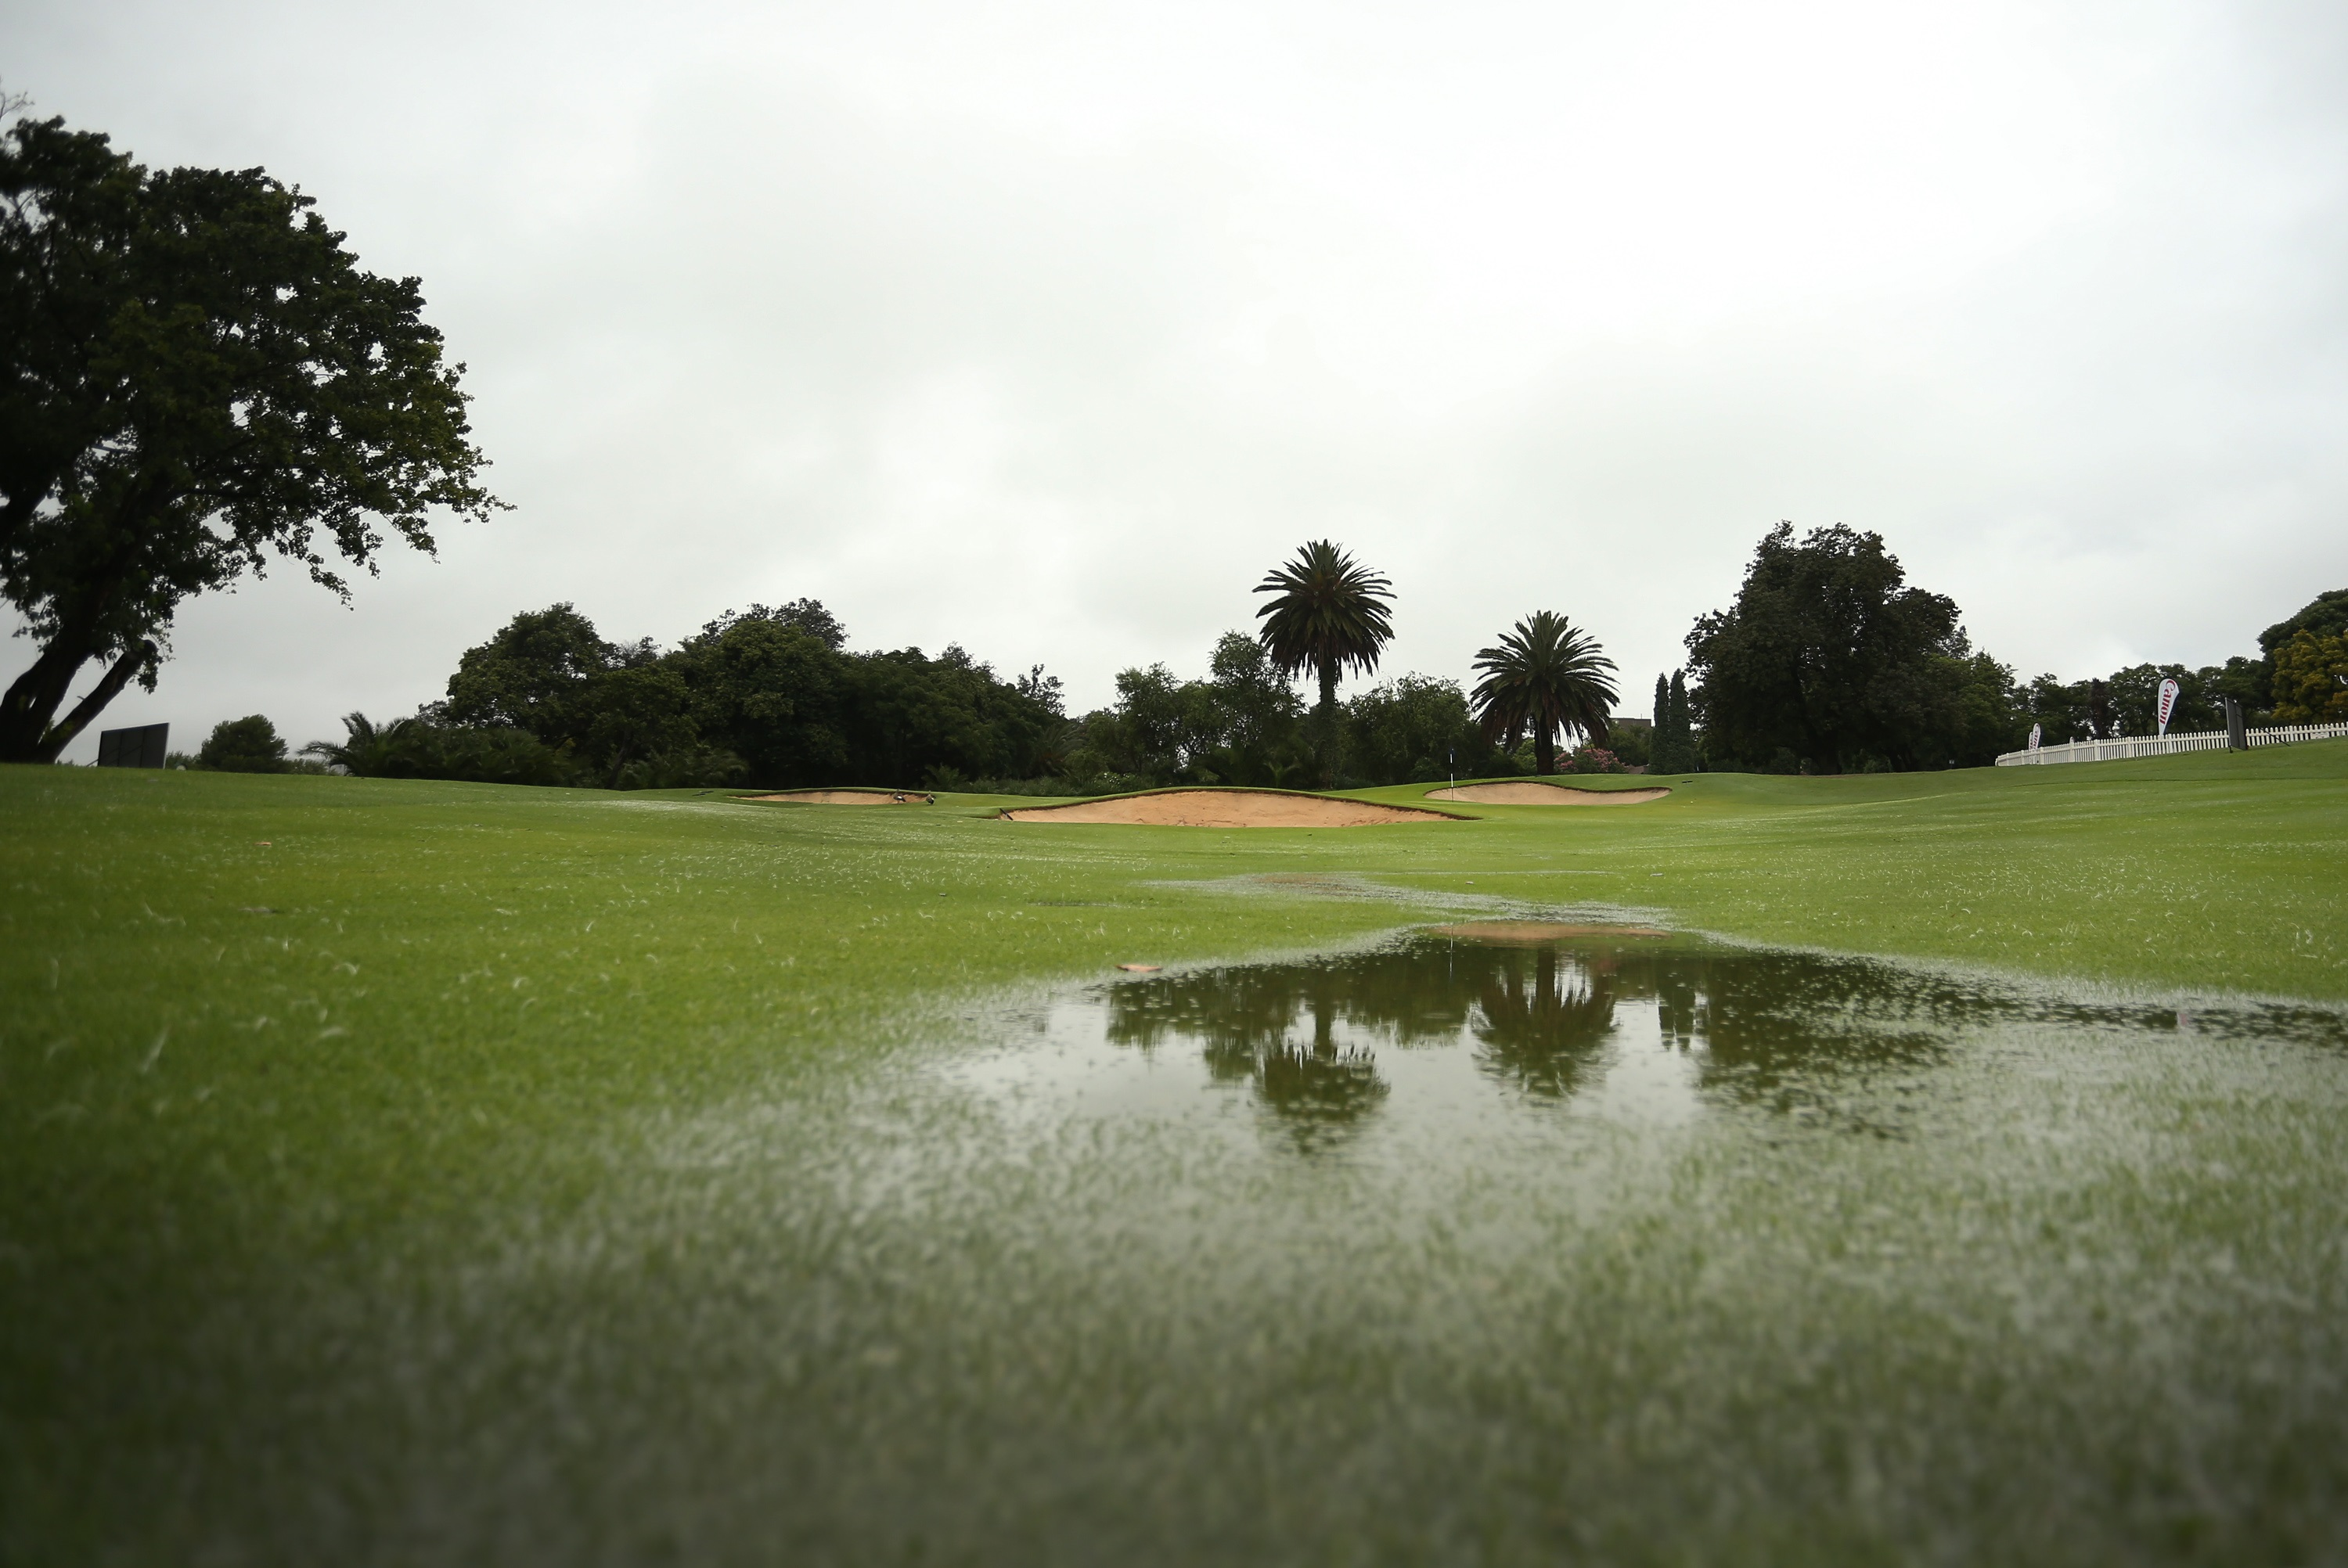 Rain wins at Glendower and forces early Sunshine start